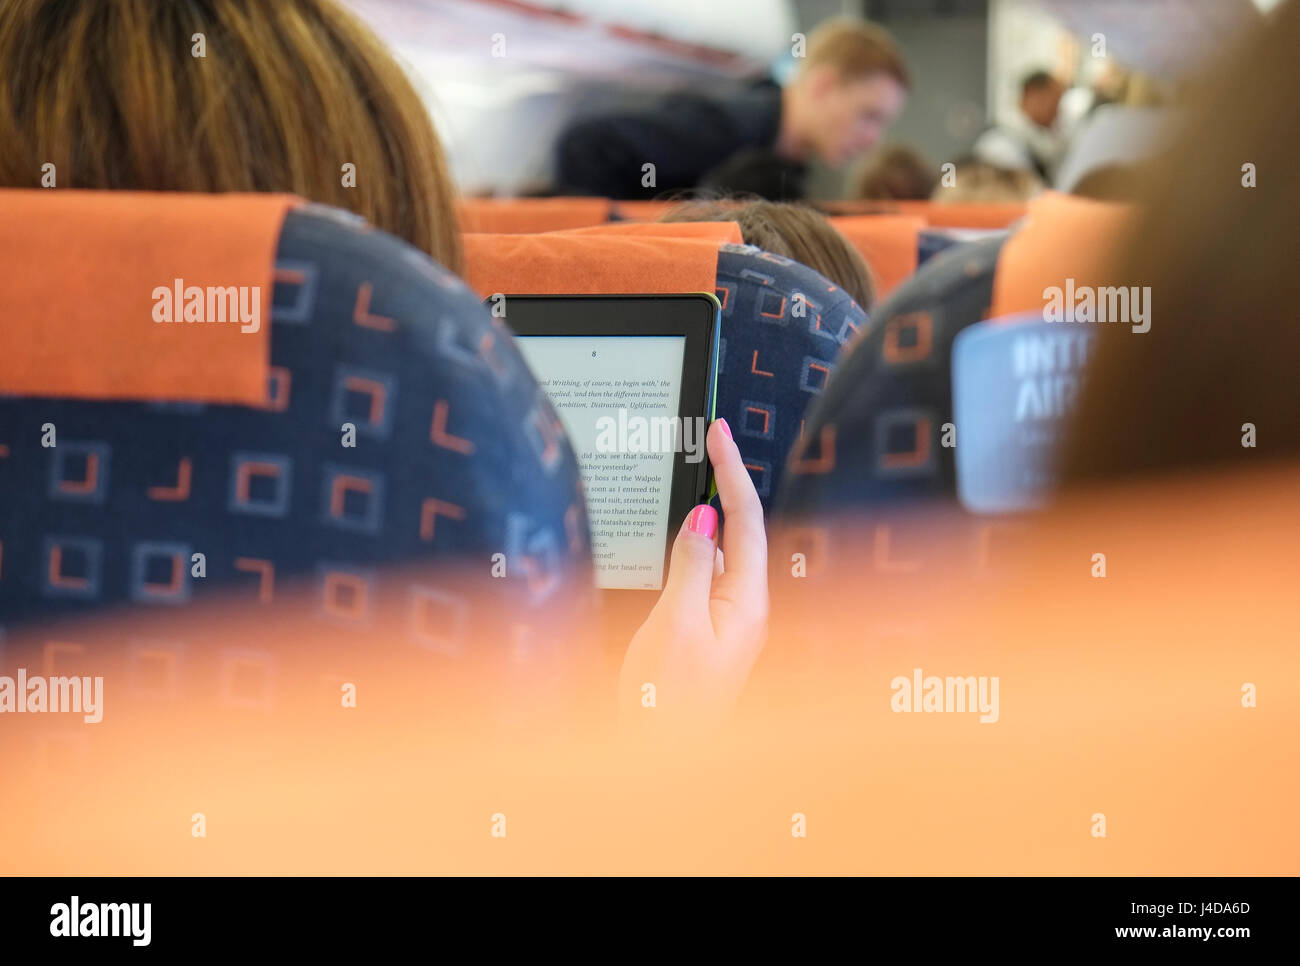 person reading ebook on aircraft flight - Stock Image